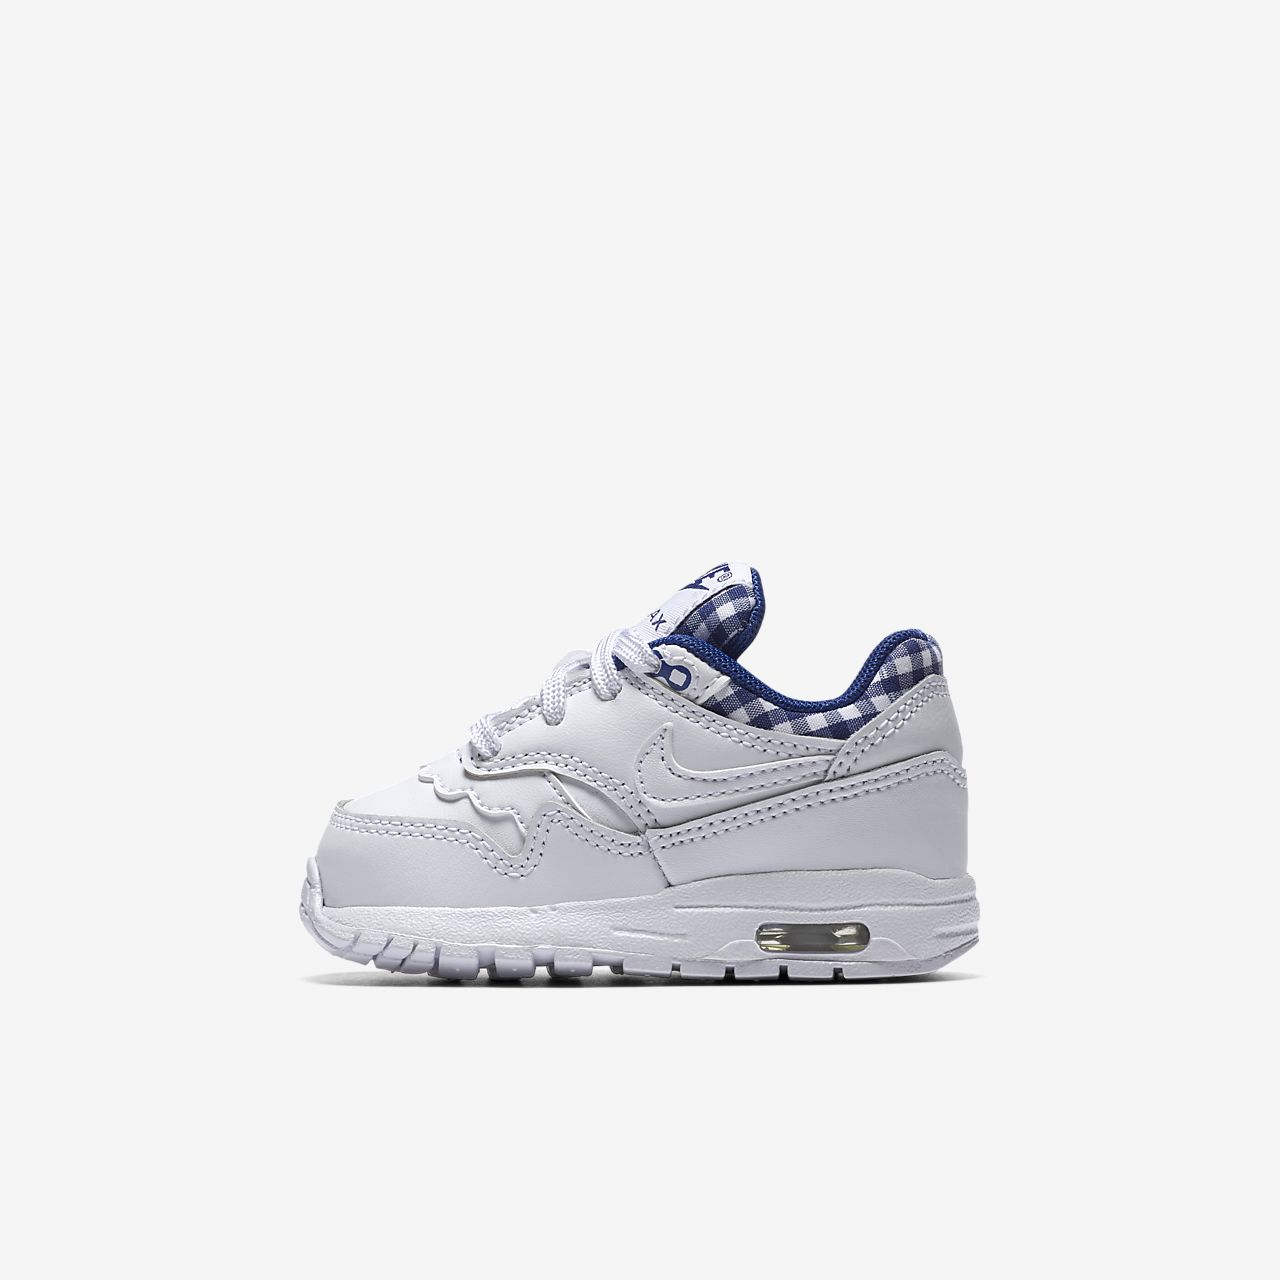 083fa6d5da659 ... Nike Air Max 1 QS Infant Toddler Shoe ...